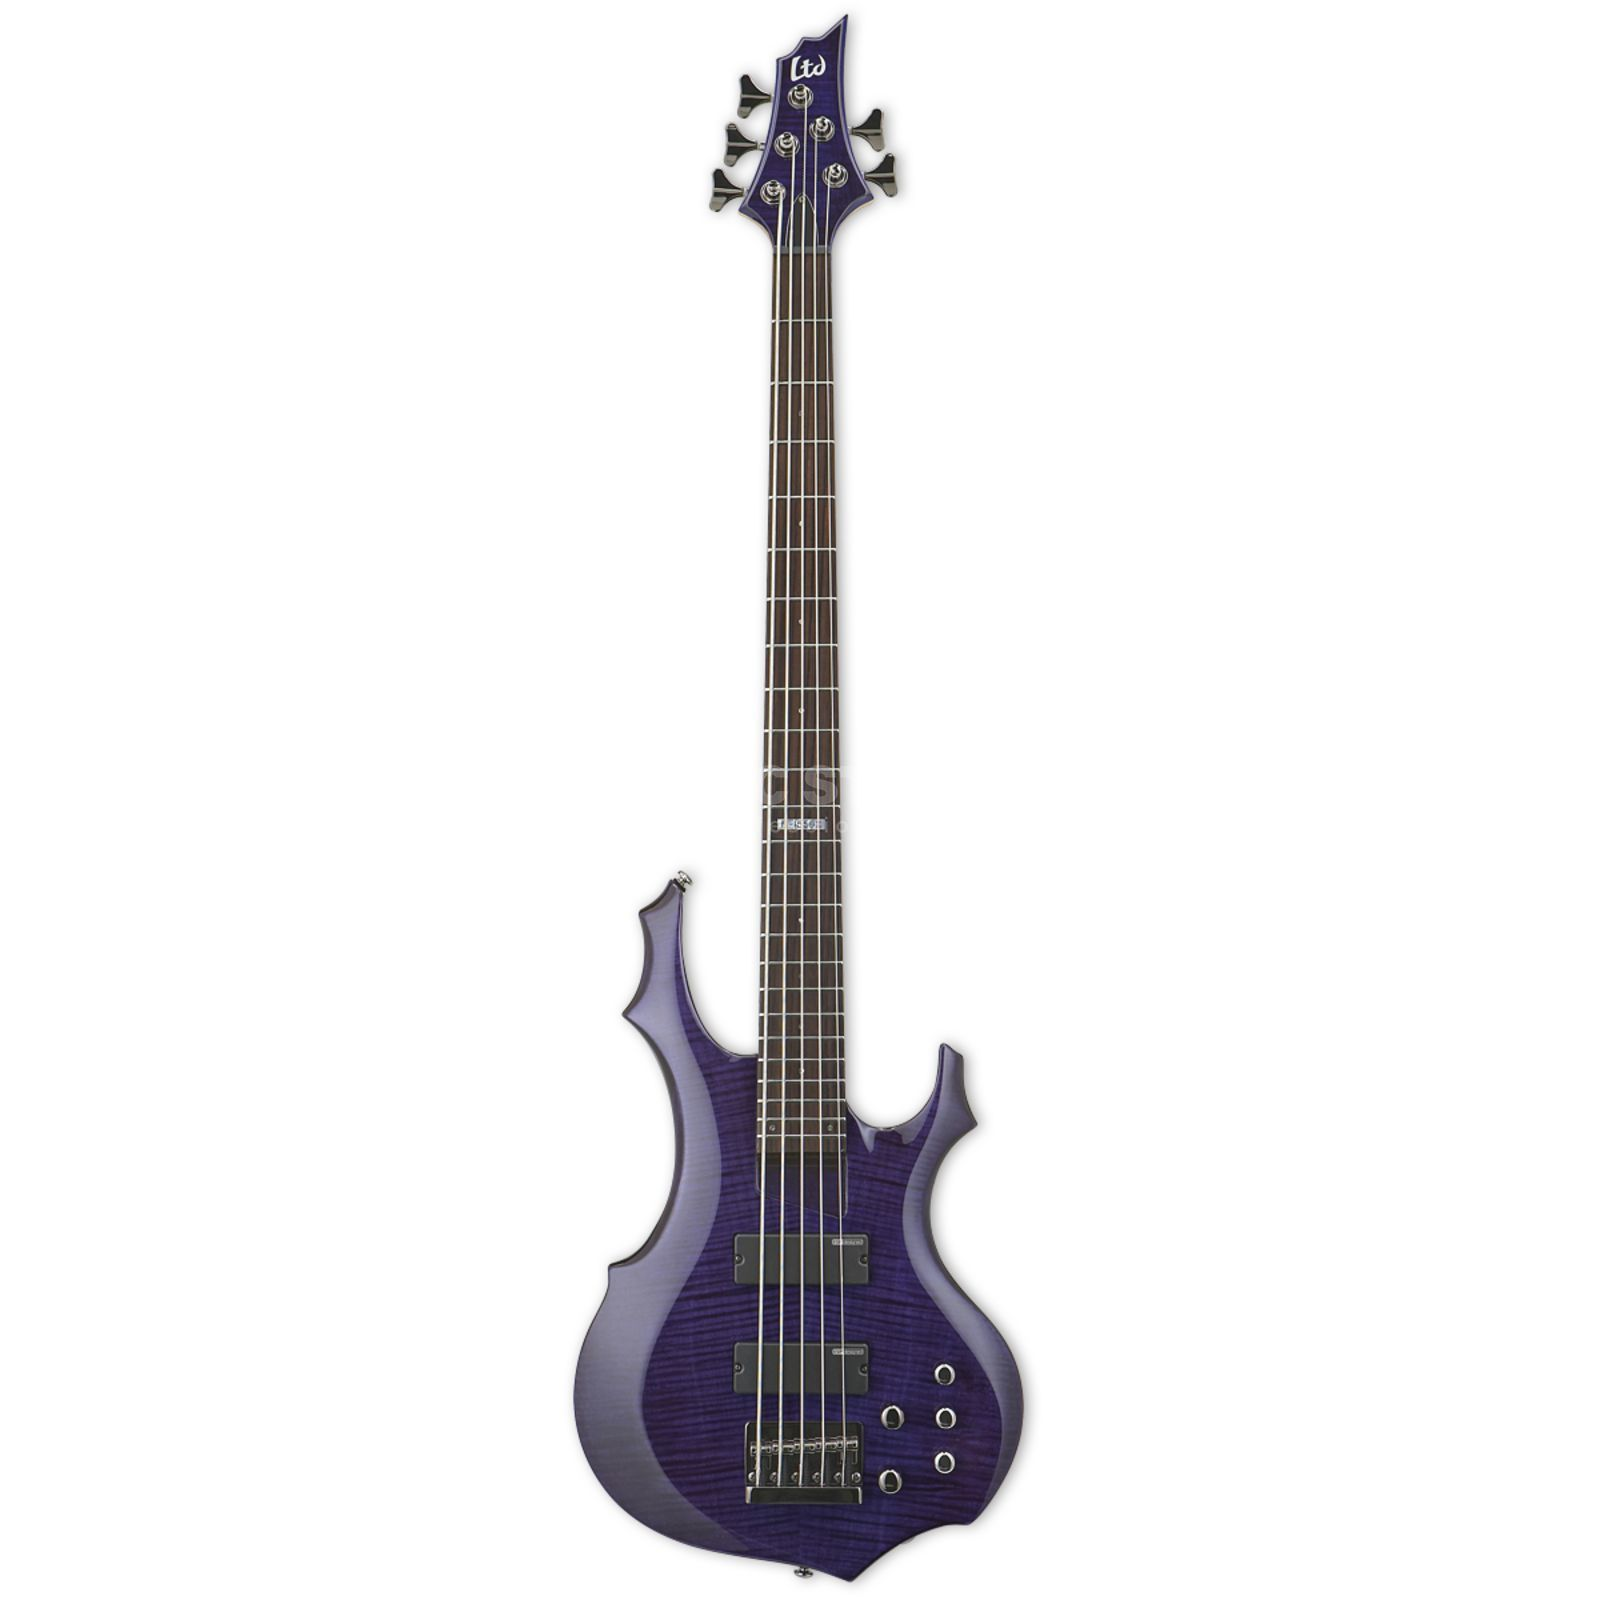 ESP LTD F-155DX Electric Bass Guit ar, Dark See Thru Purple   Product Image